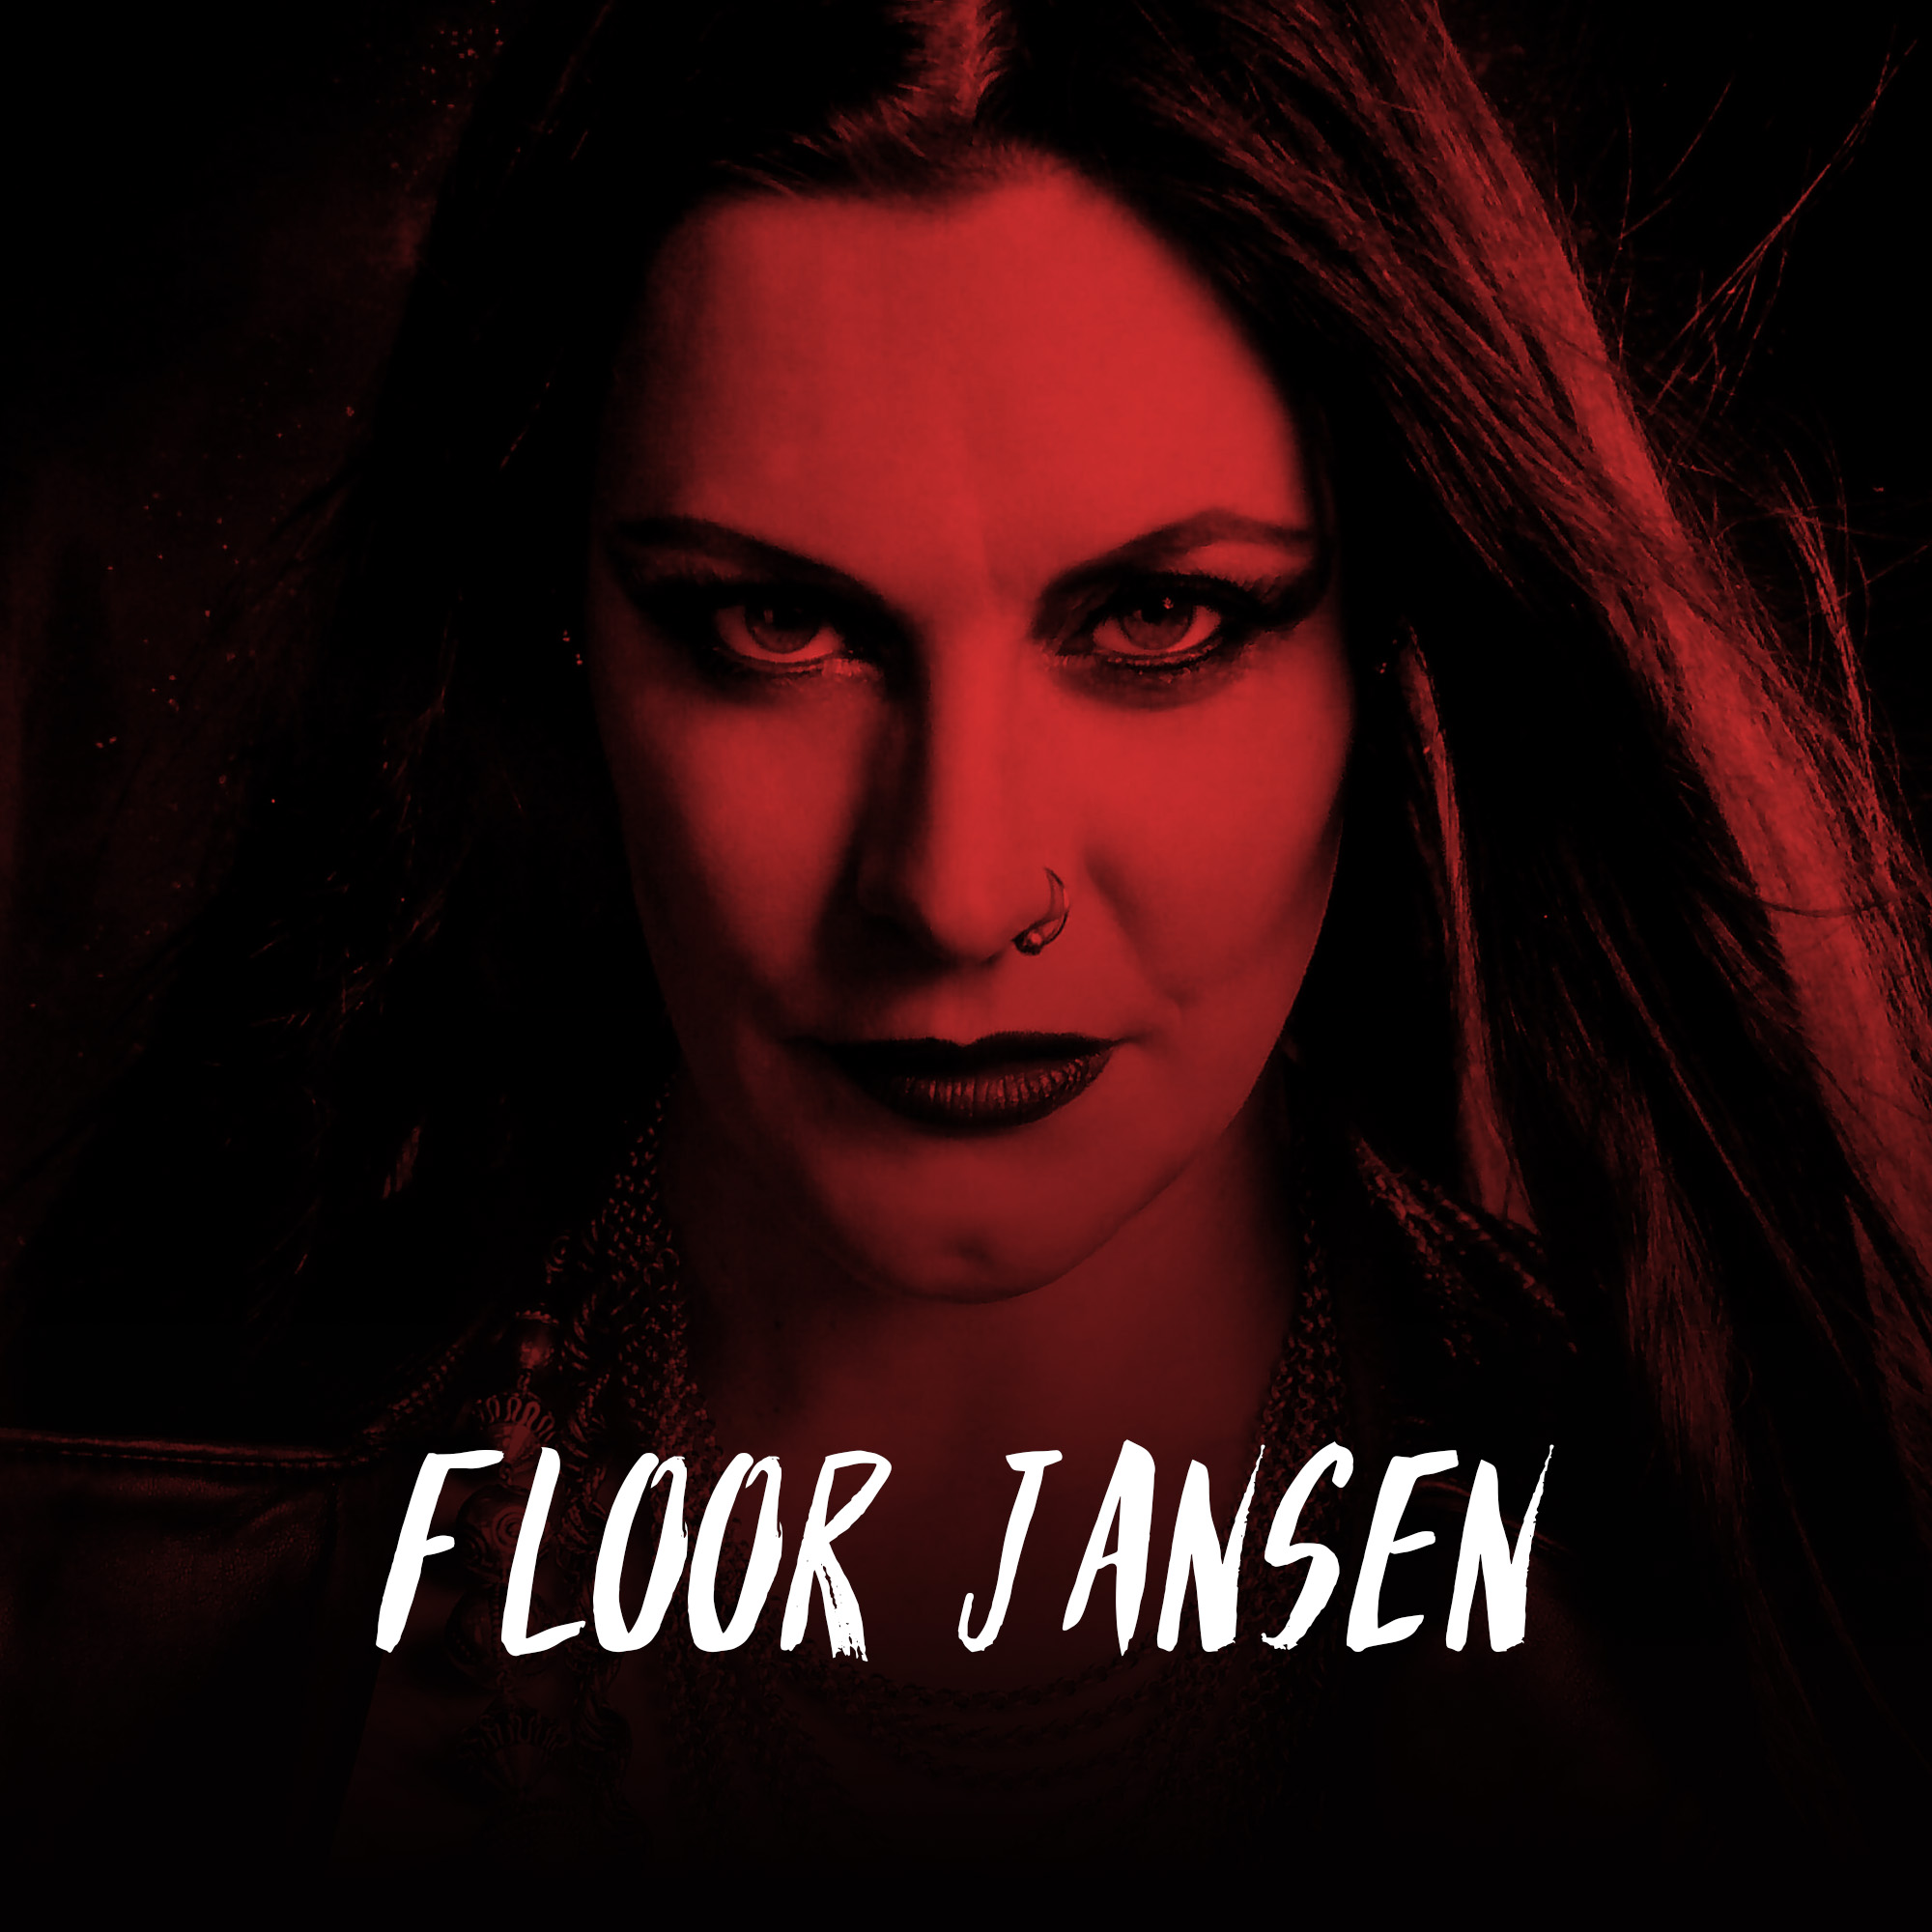 This Is Floor Jansen Spotify Playlist